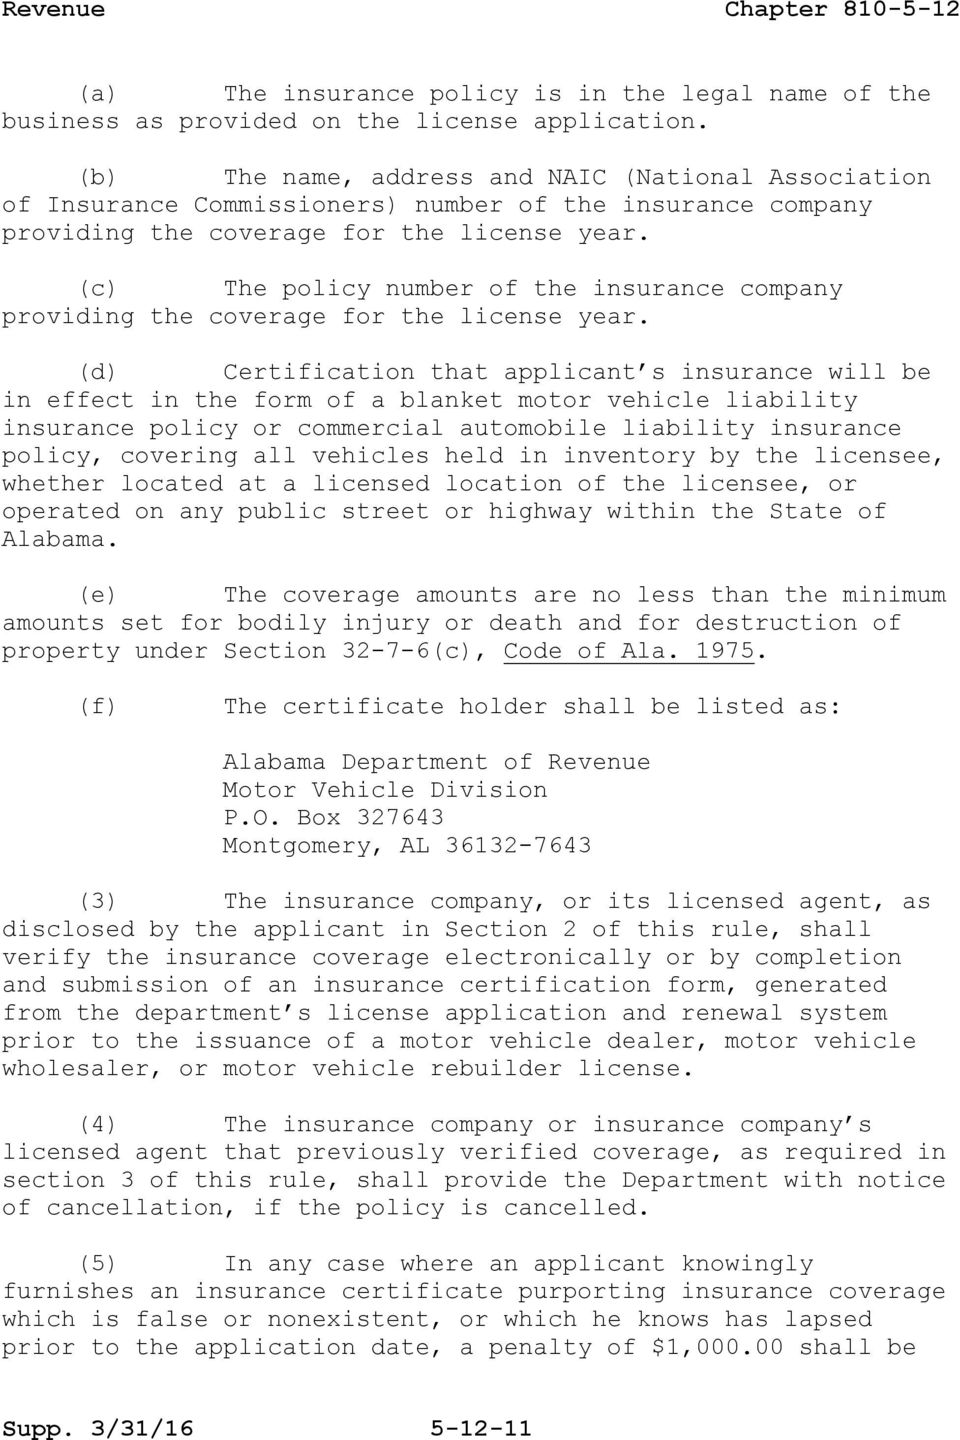 (c) The policy number of the insurance company providing the coverage for the license year.